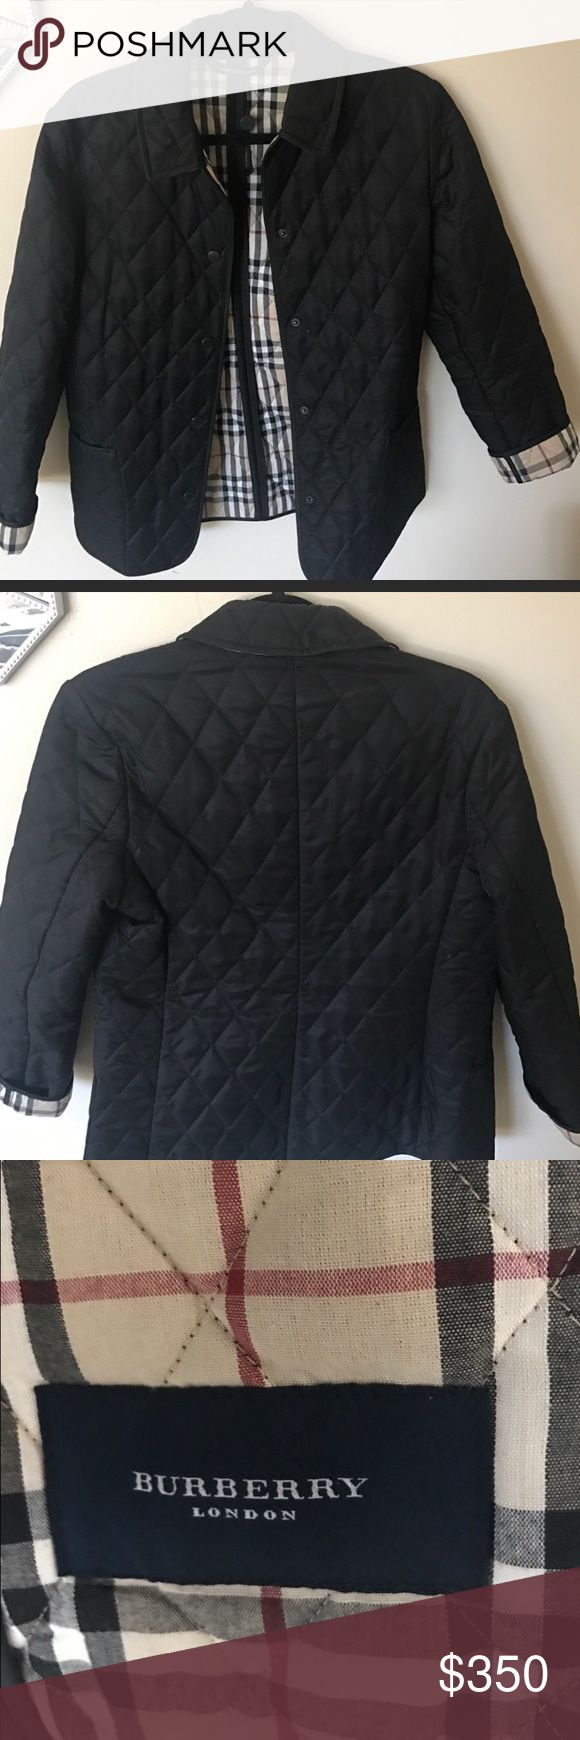 Burberry Quilted Jacket Like new Burberry Jacket for spring/ fall! Burberry Jackets & Coats